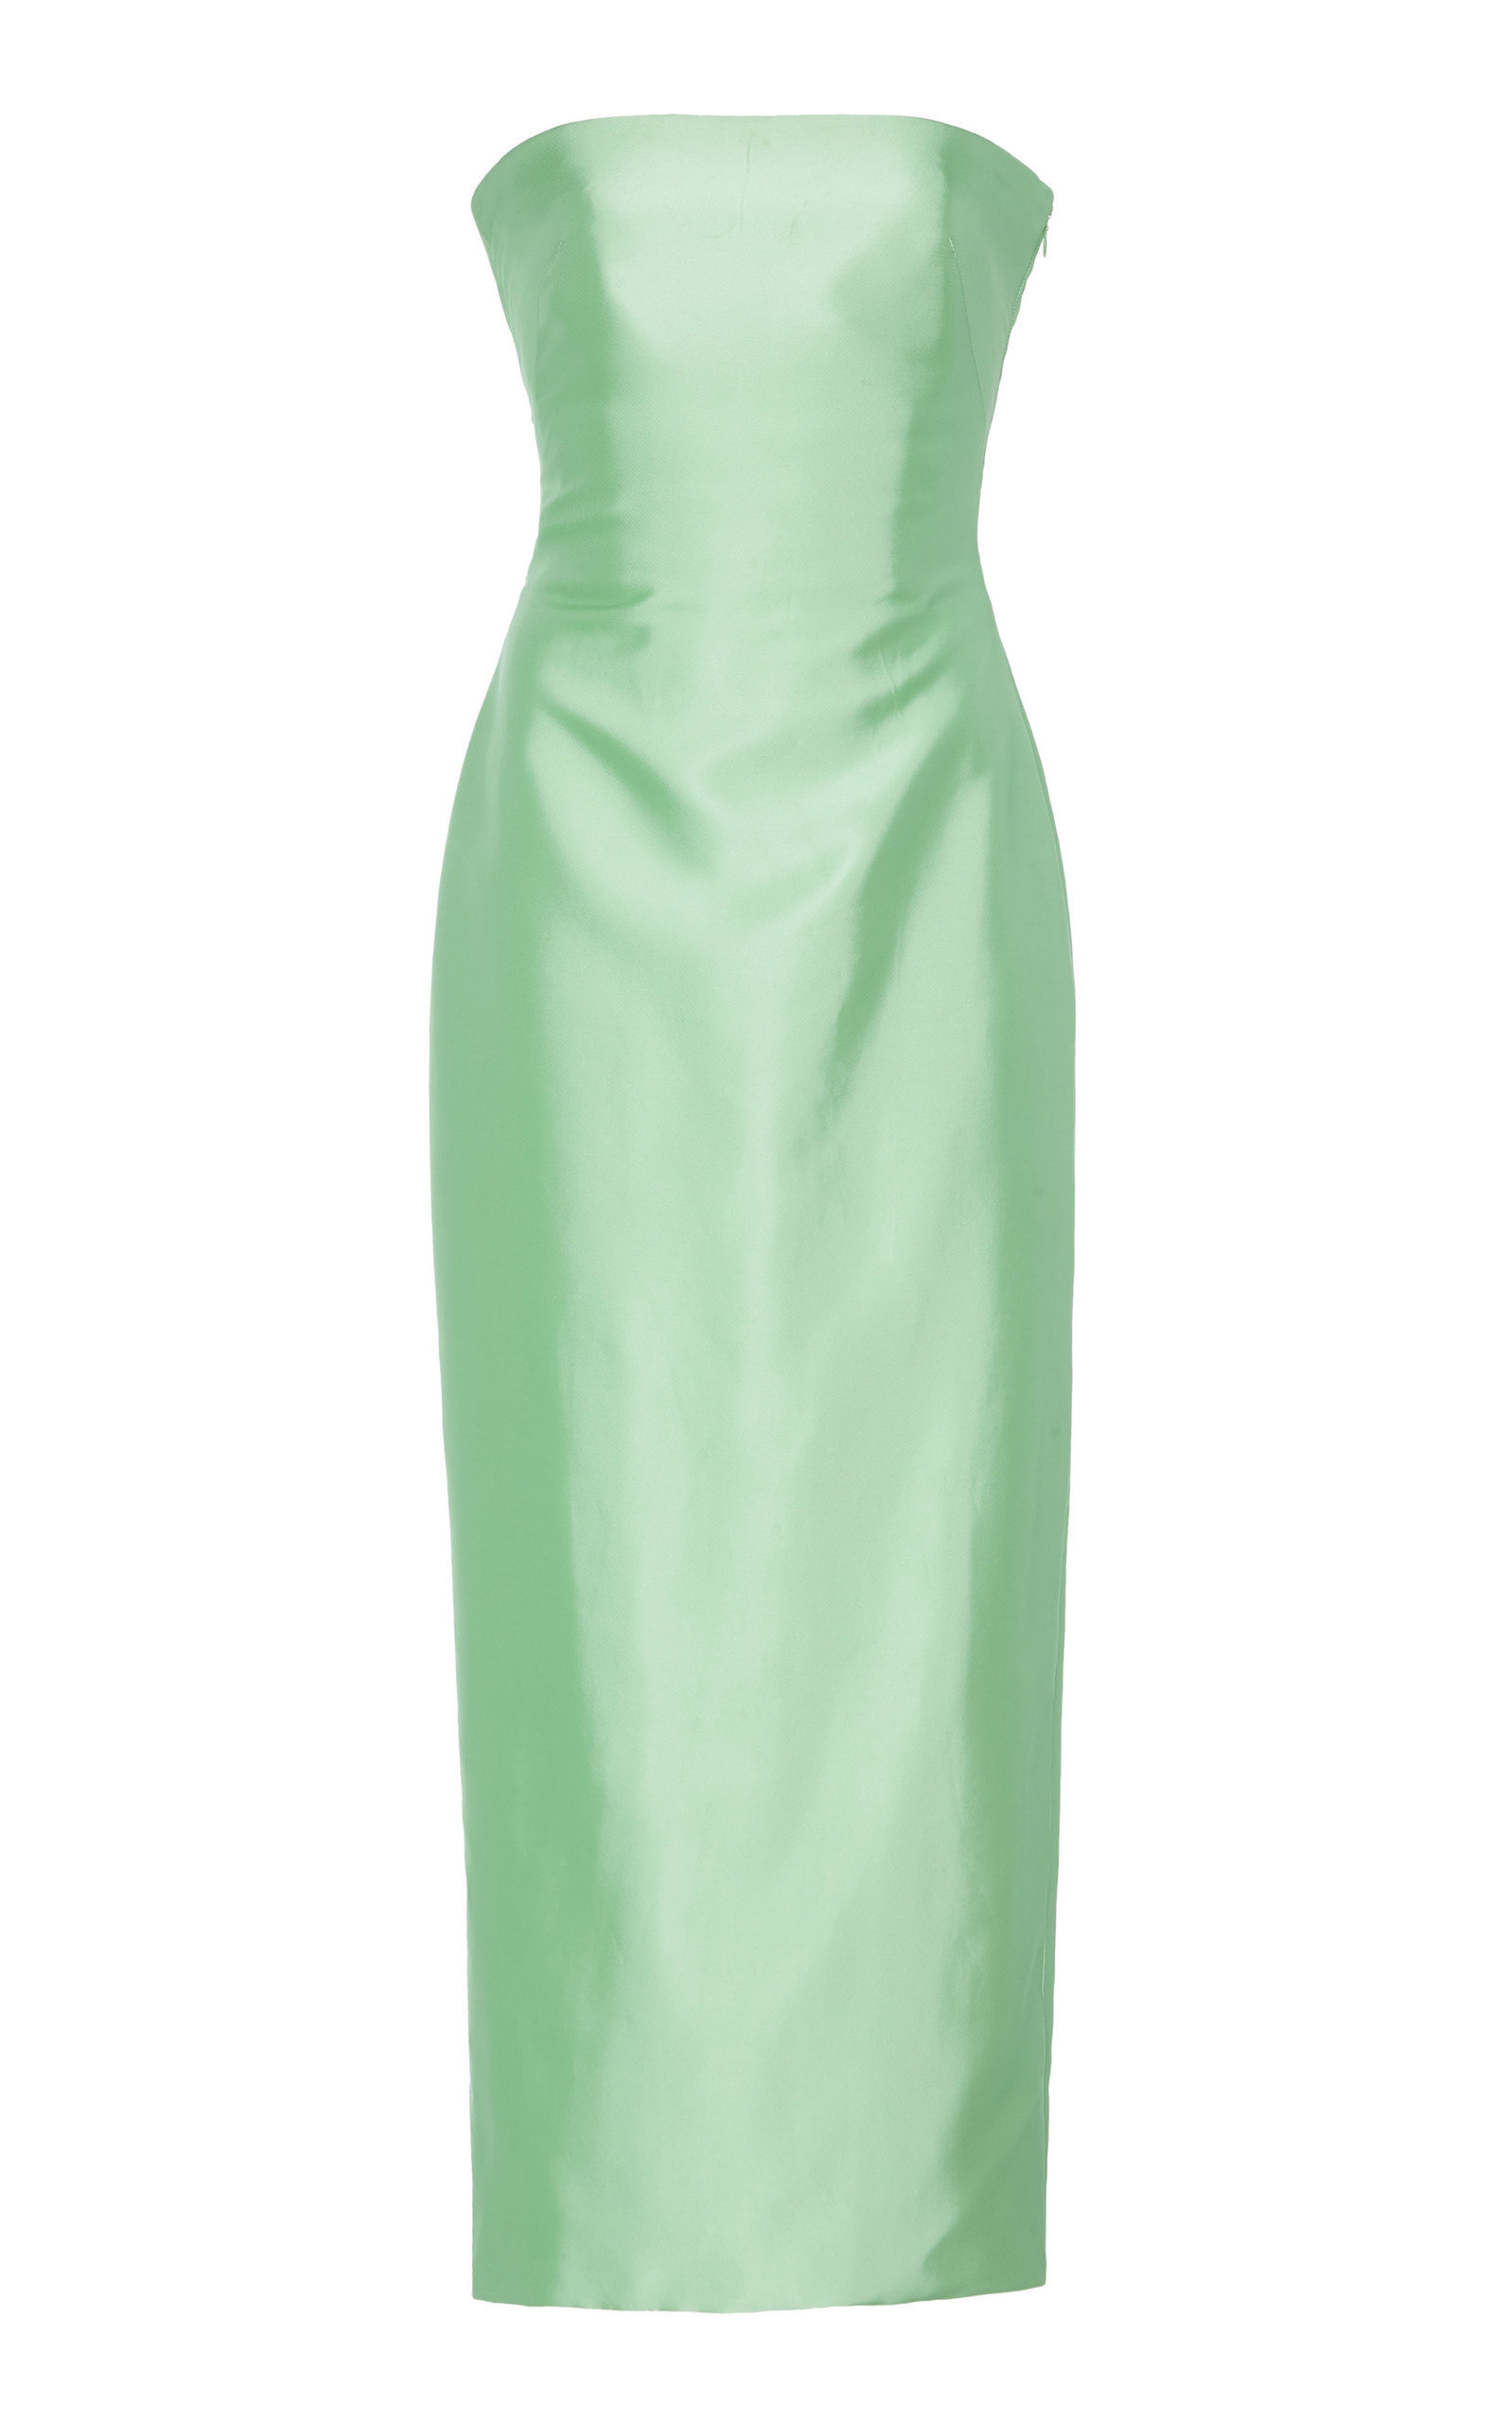 ffc0fe8c55c Strapless Knotted-Back Satin Cocktail Dress by BRANDON MAXWELL for Preorder  on Moda Operandi